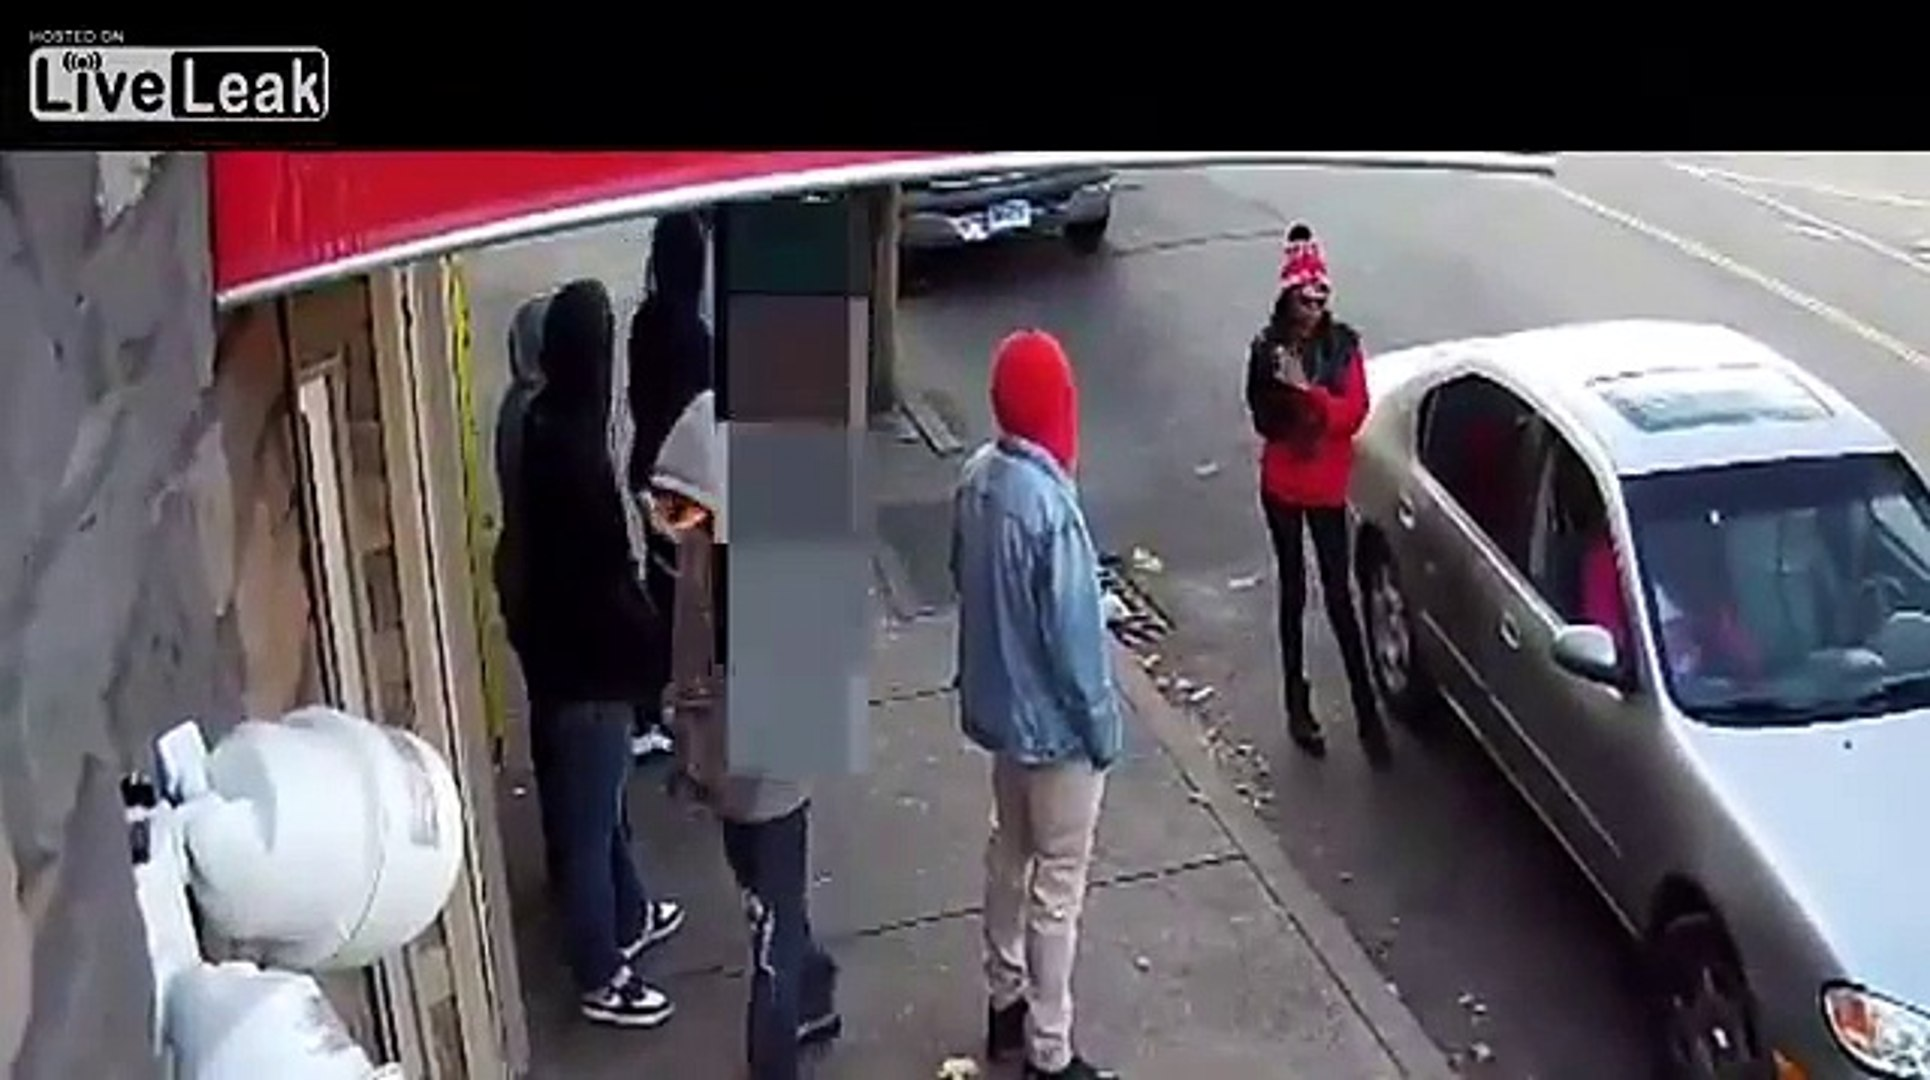 LiveLeak - Man Shot In Front Of Security Camera